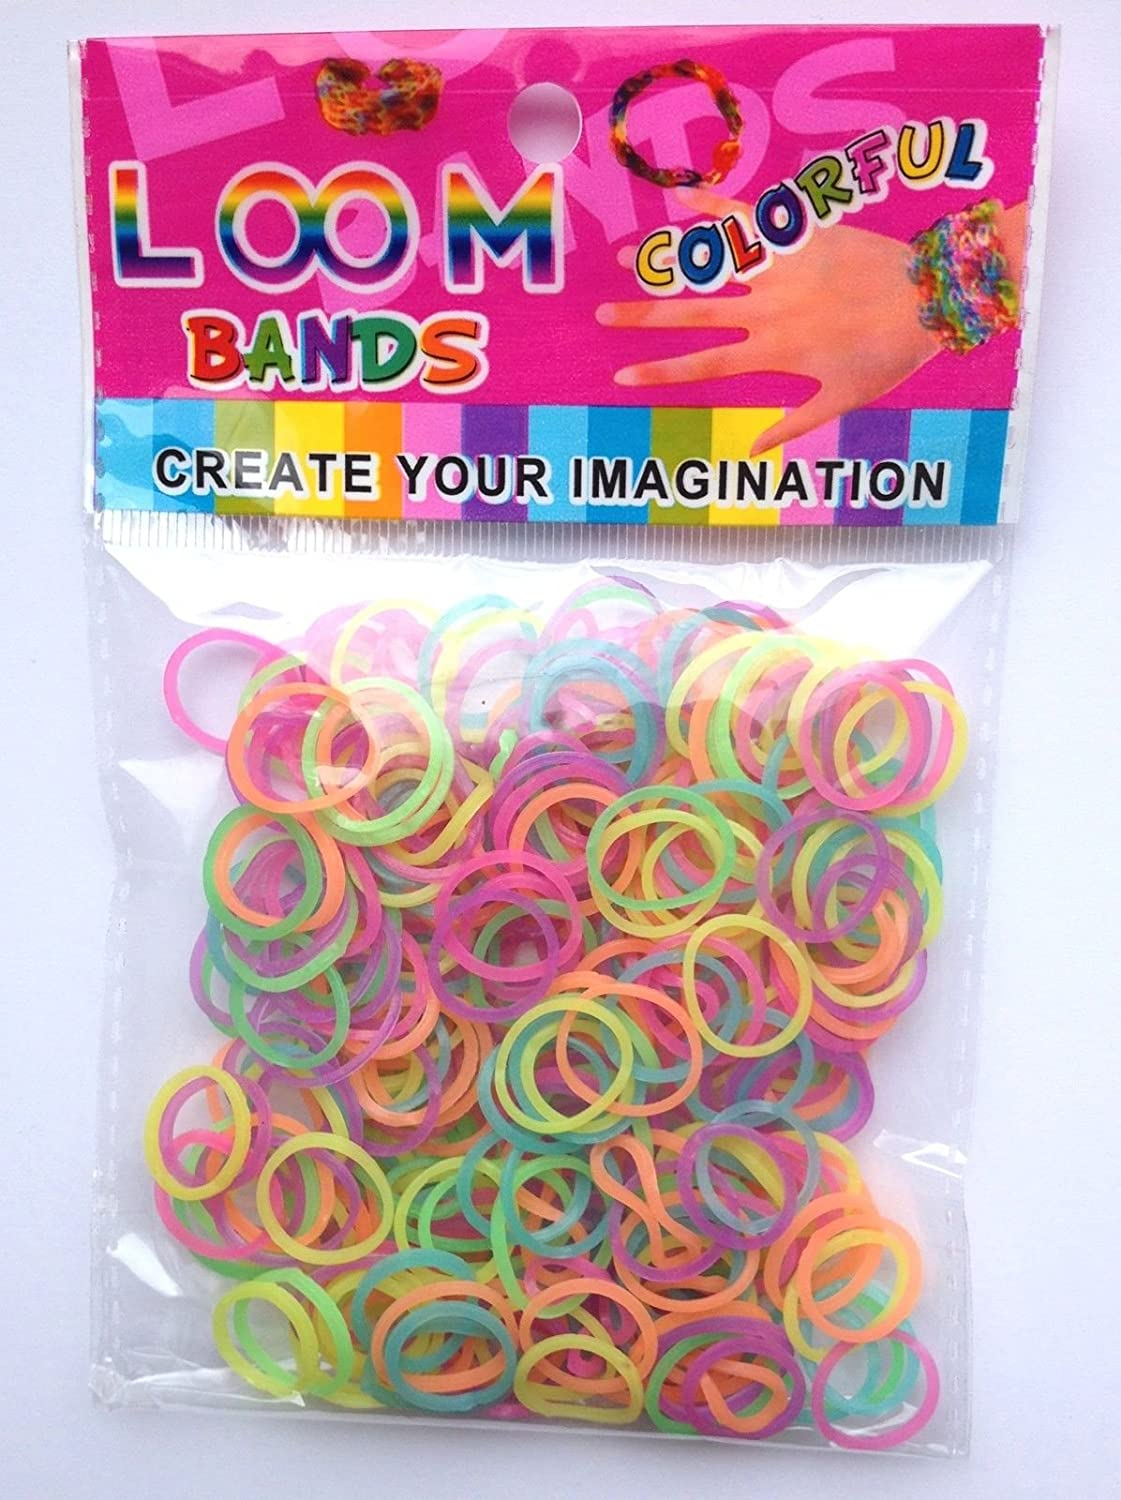 00 COLOURFUL RAINBOW LOOM BANDZ BANDS BRACELET MAKING KIT PARTY (Glow in the dark) LEGEND